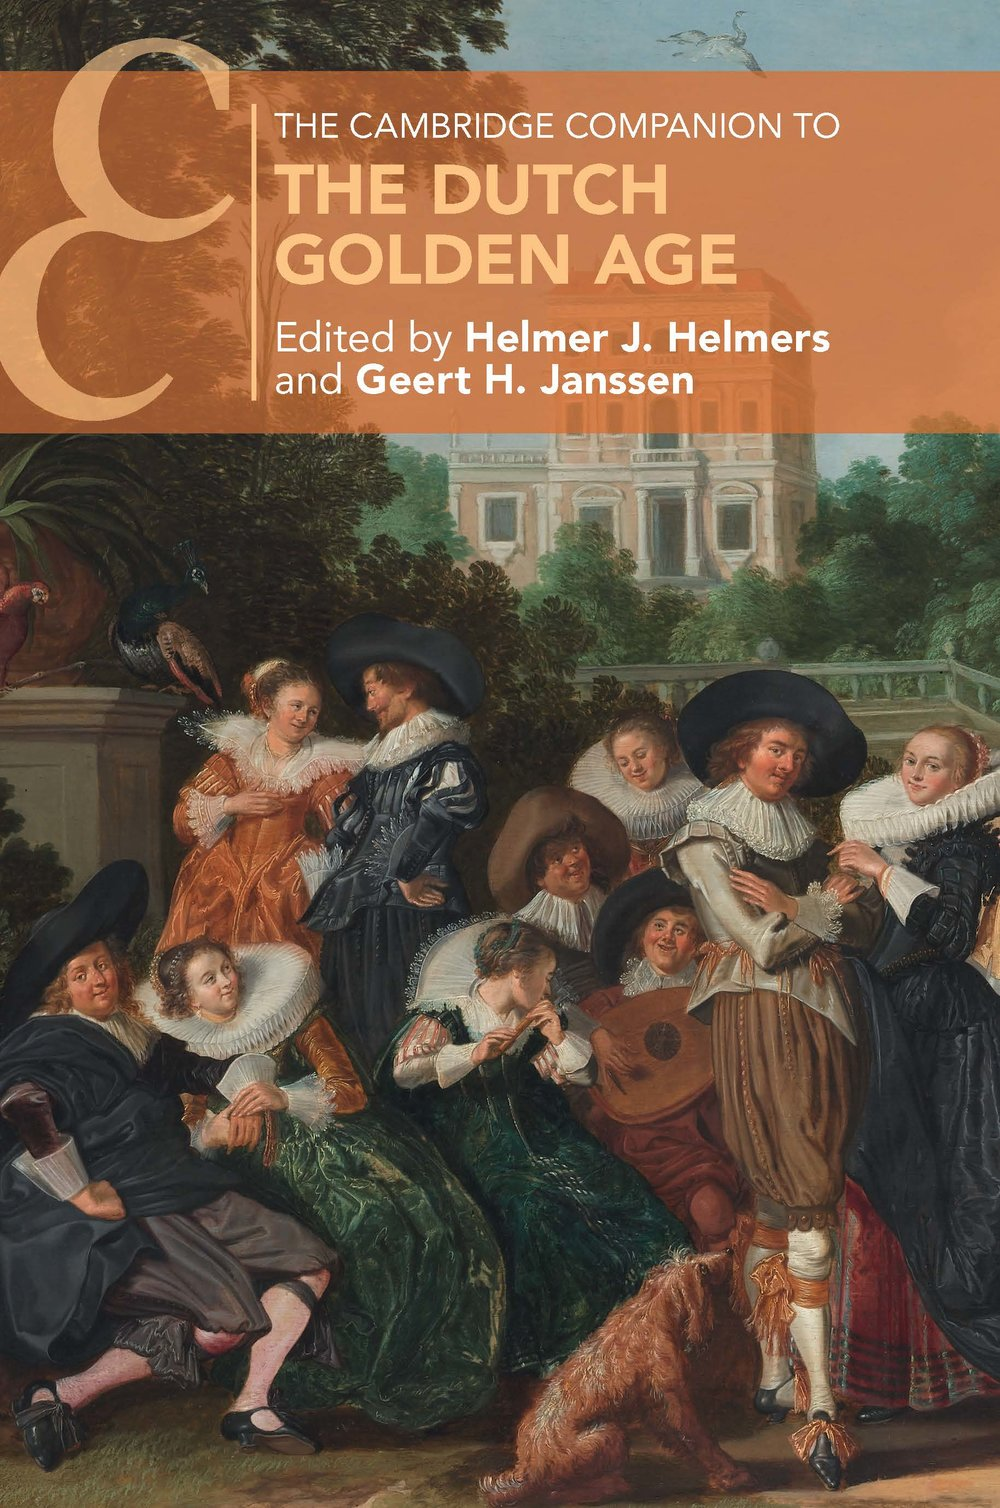 The Cambridge Companion to the Dutch Golden Age_Cover.jpg